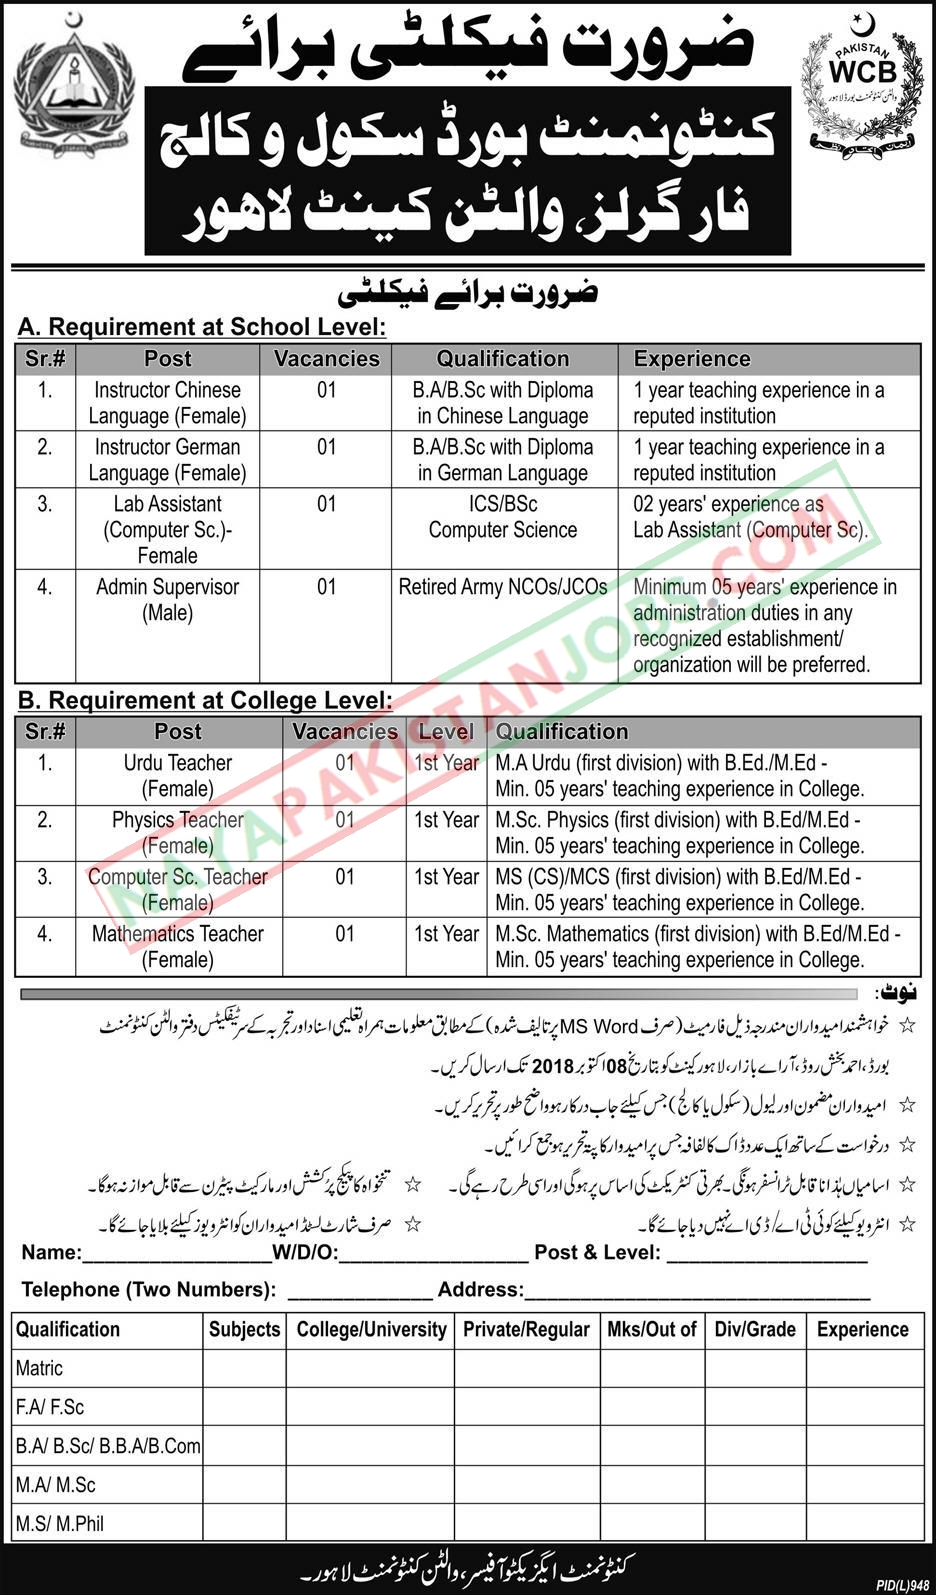 Latest Vacancies Announced in Cantonment Board Public School And College Lahore Application Form Download - 30 September 2018 - Naya Pak Jobs